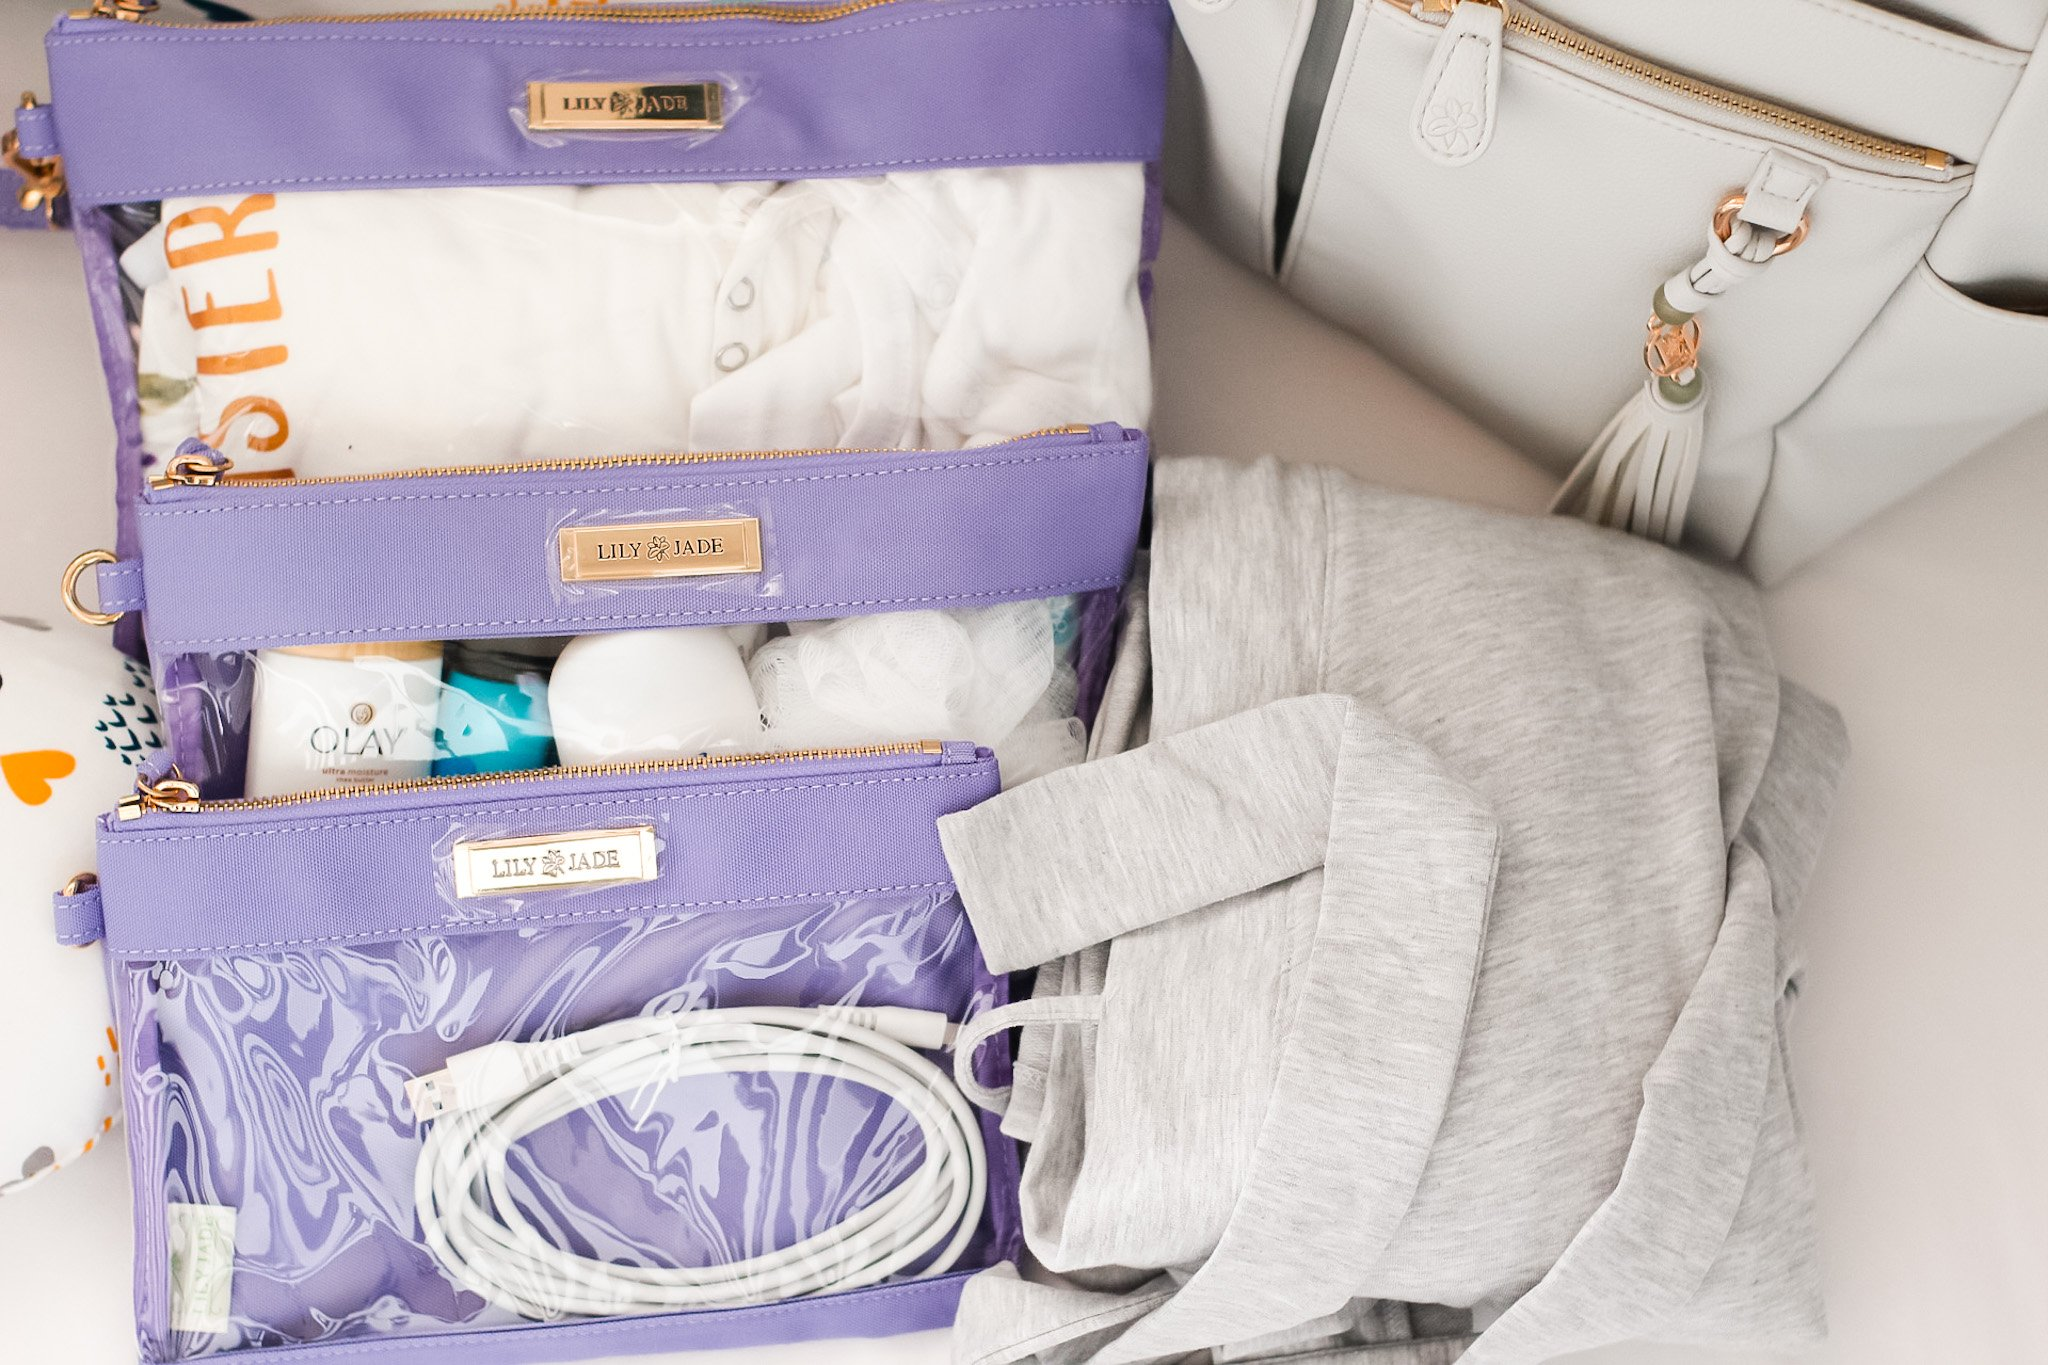 hopsital bag items to pack for mom